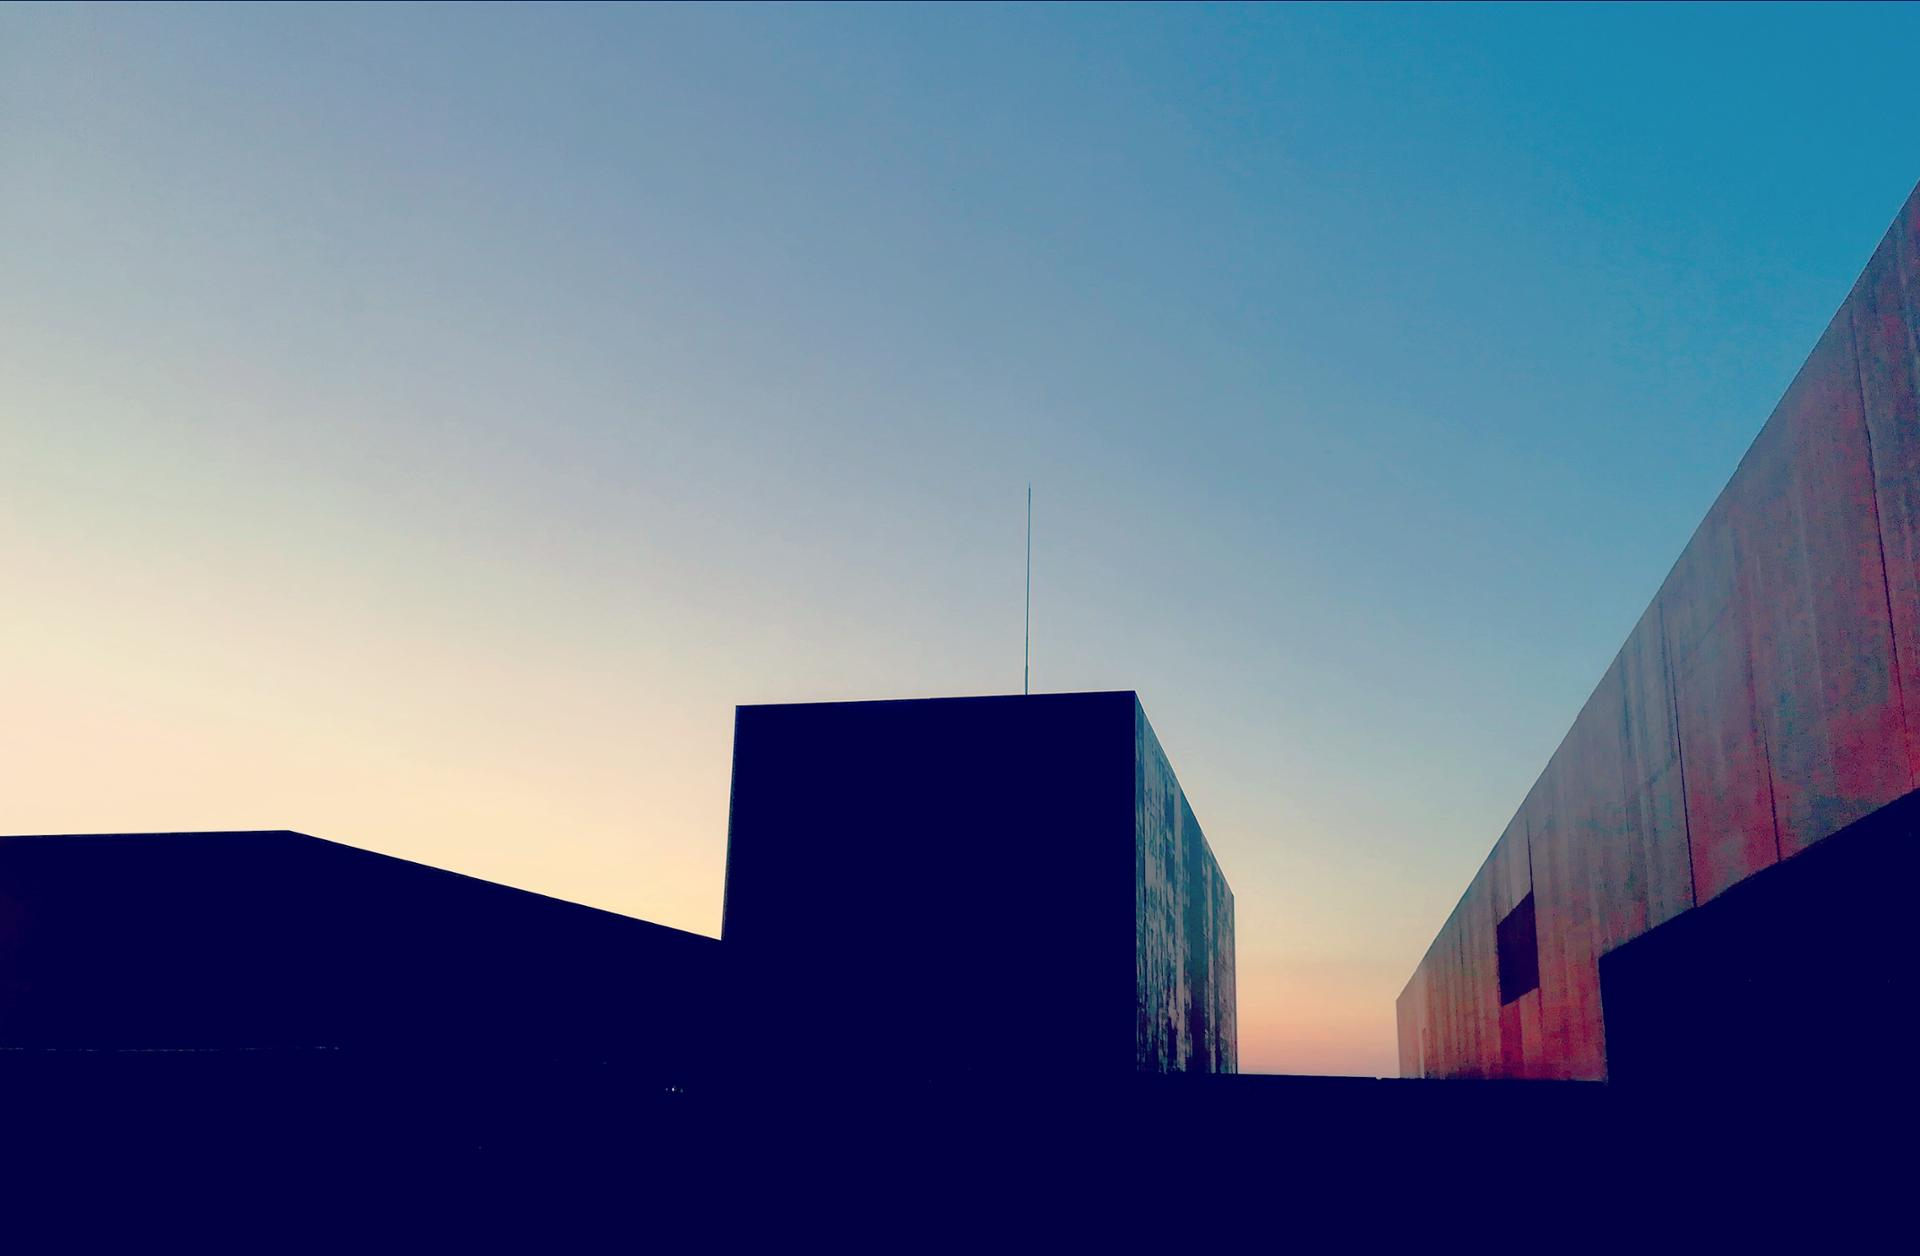 sunset soulages museum